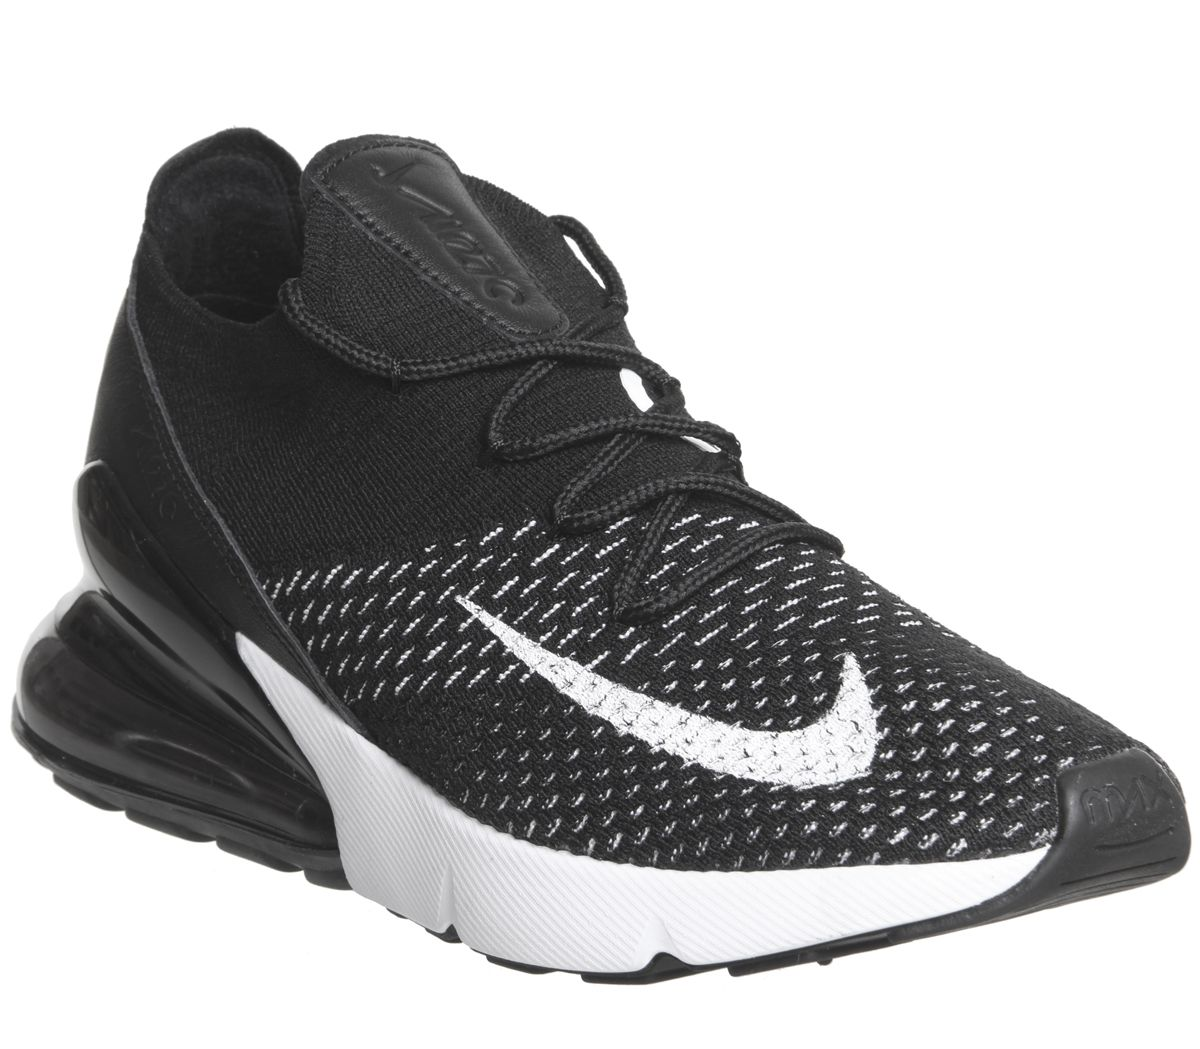 classic fit a1870 b1b31 Nike Air Max 270 Flyknit Trainers Black White F - Hers trainers